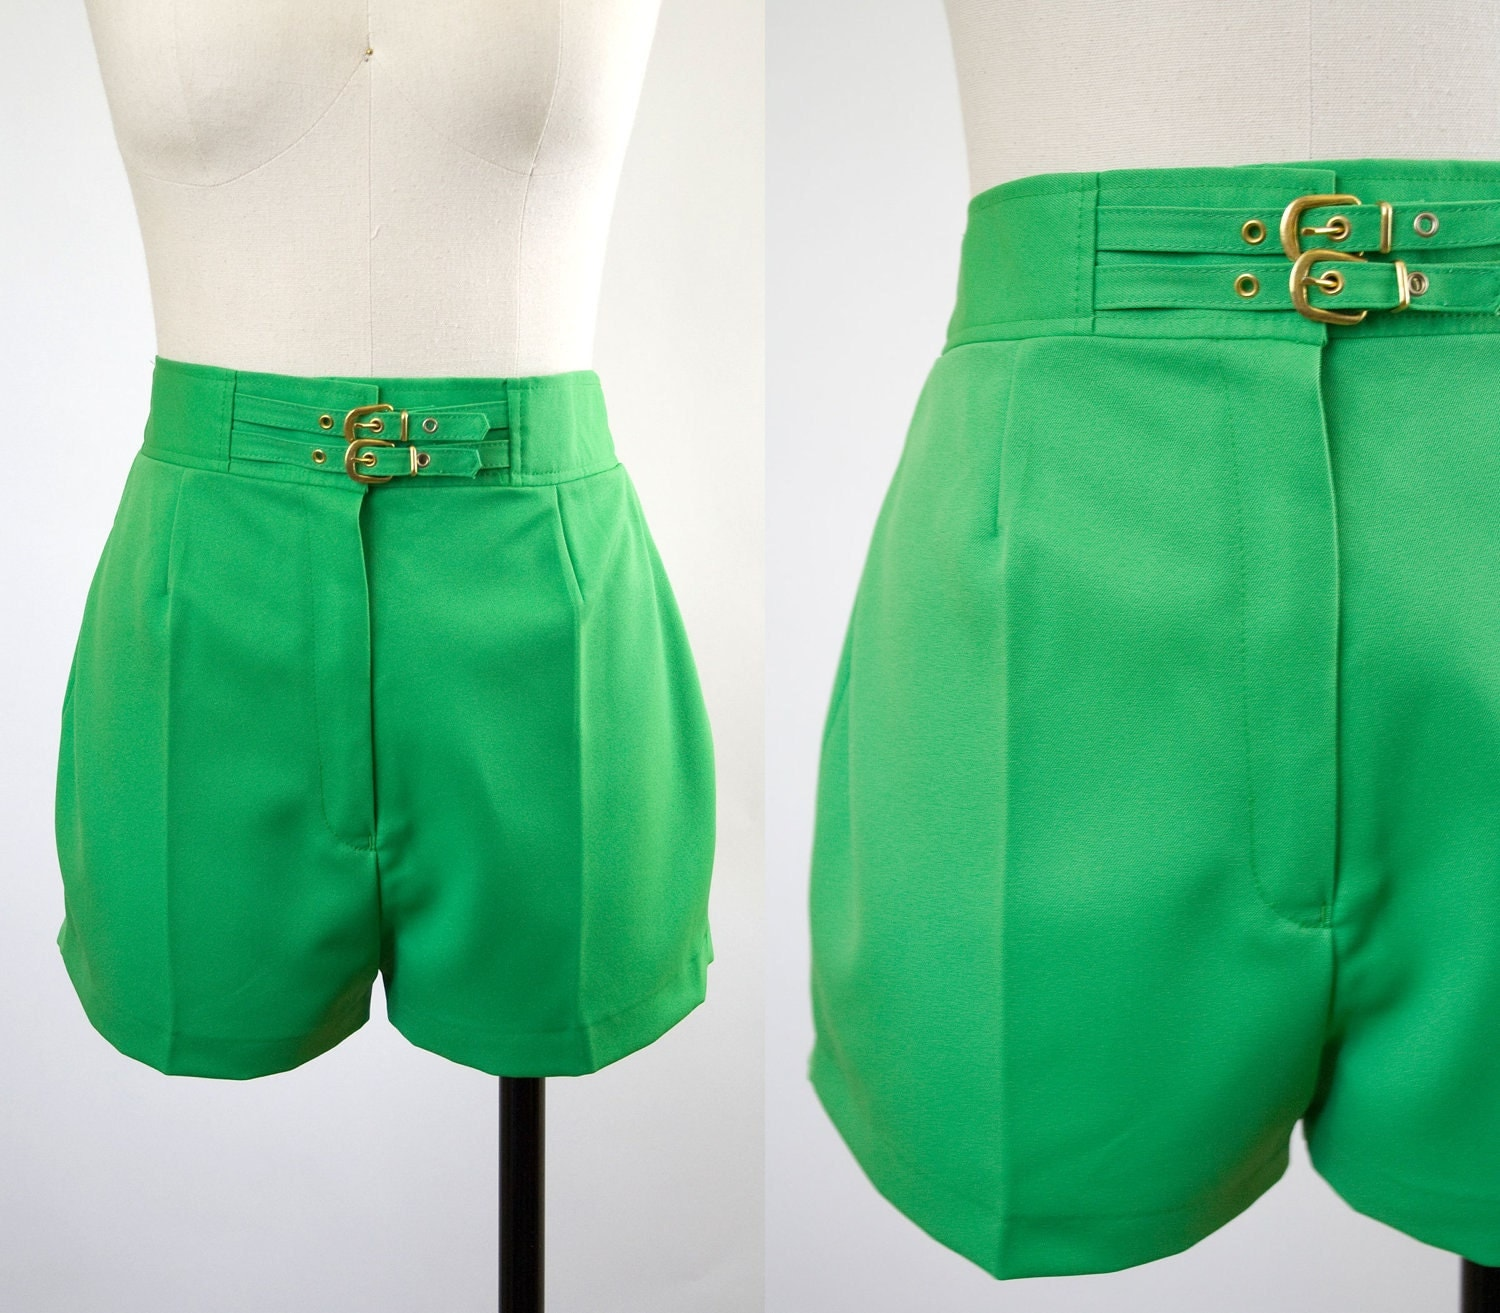 manga-hub.tk provides green high waisted shorts items from China top selected Women's Shorts, Women's Clothing, Apparel suppliers at wholesale prices with worldwide delivery. You can find short, Men green high waisted shorts free shipping, high waisted green shorts and view 87 green high waisted shorts reviews to help you choose.